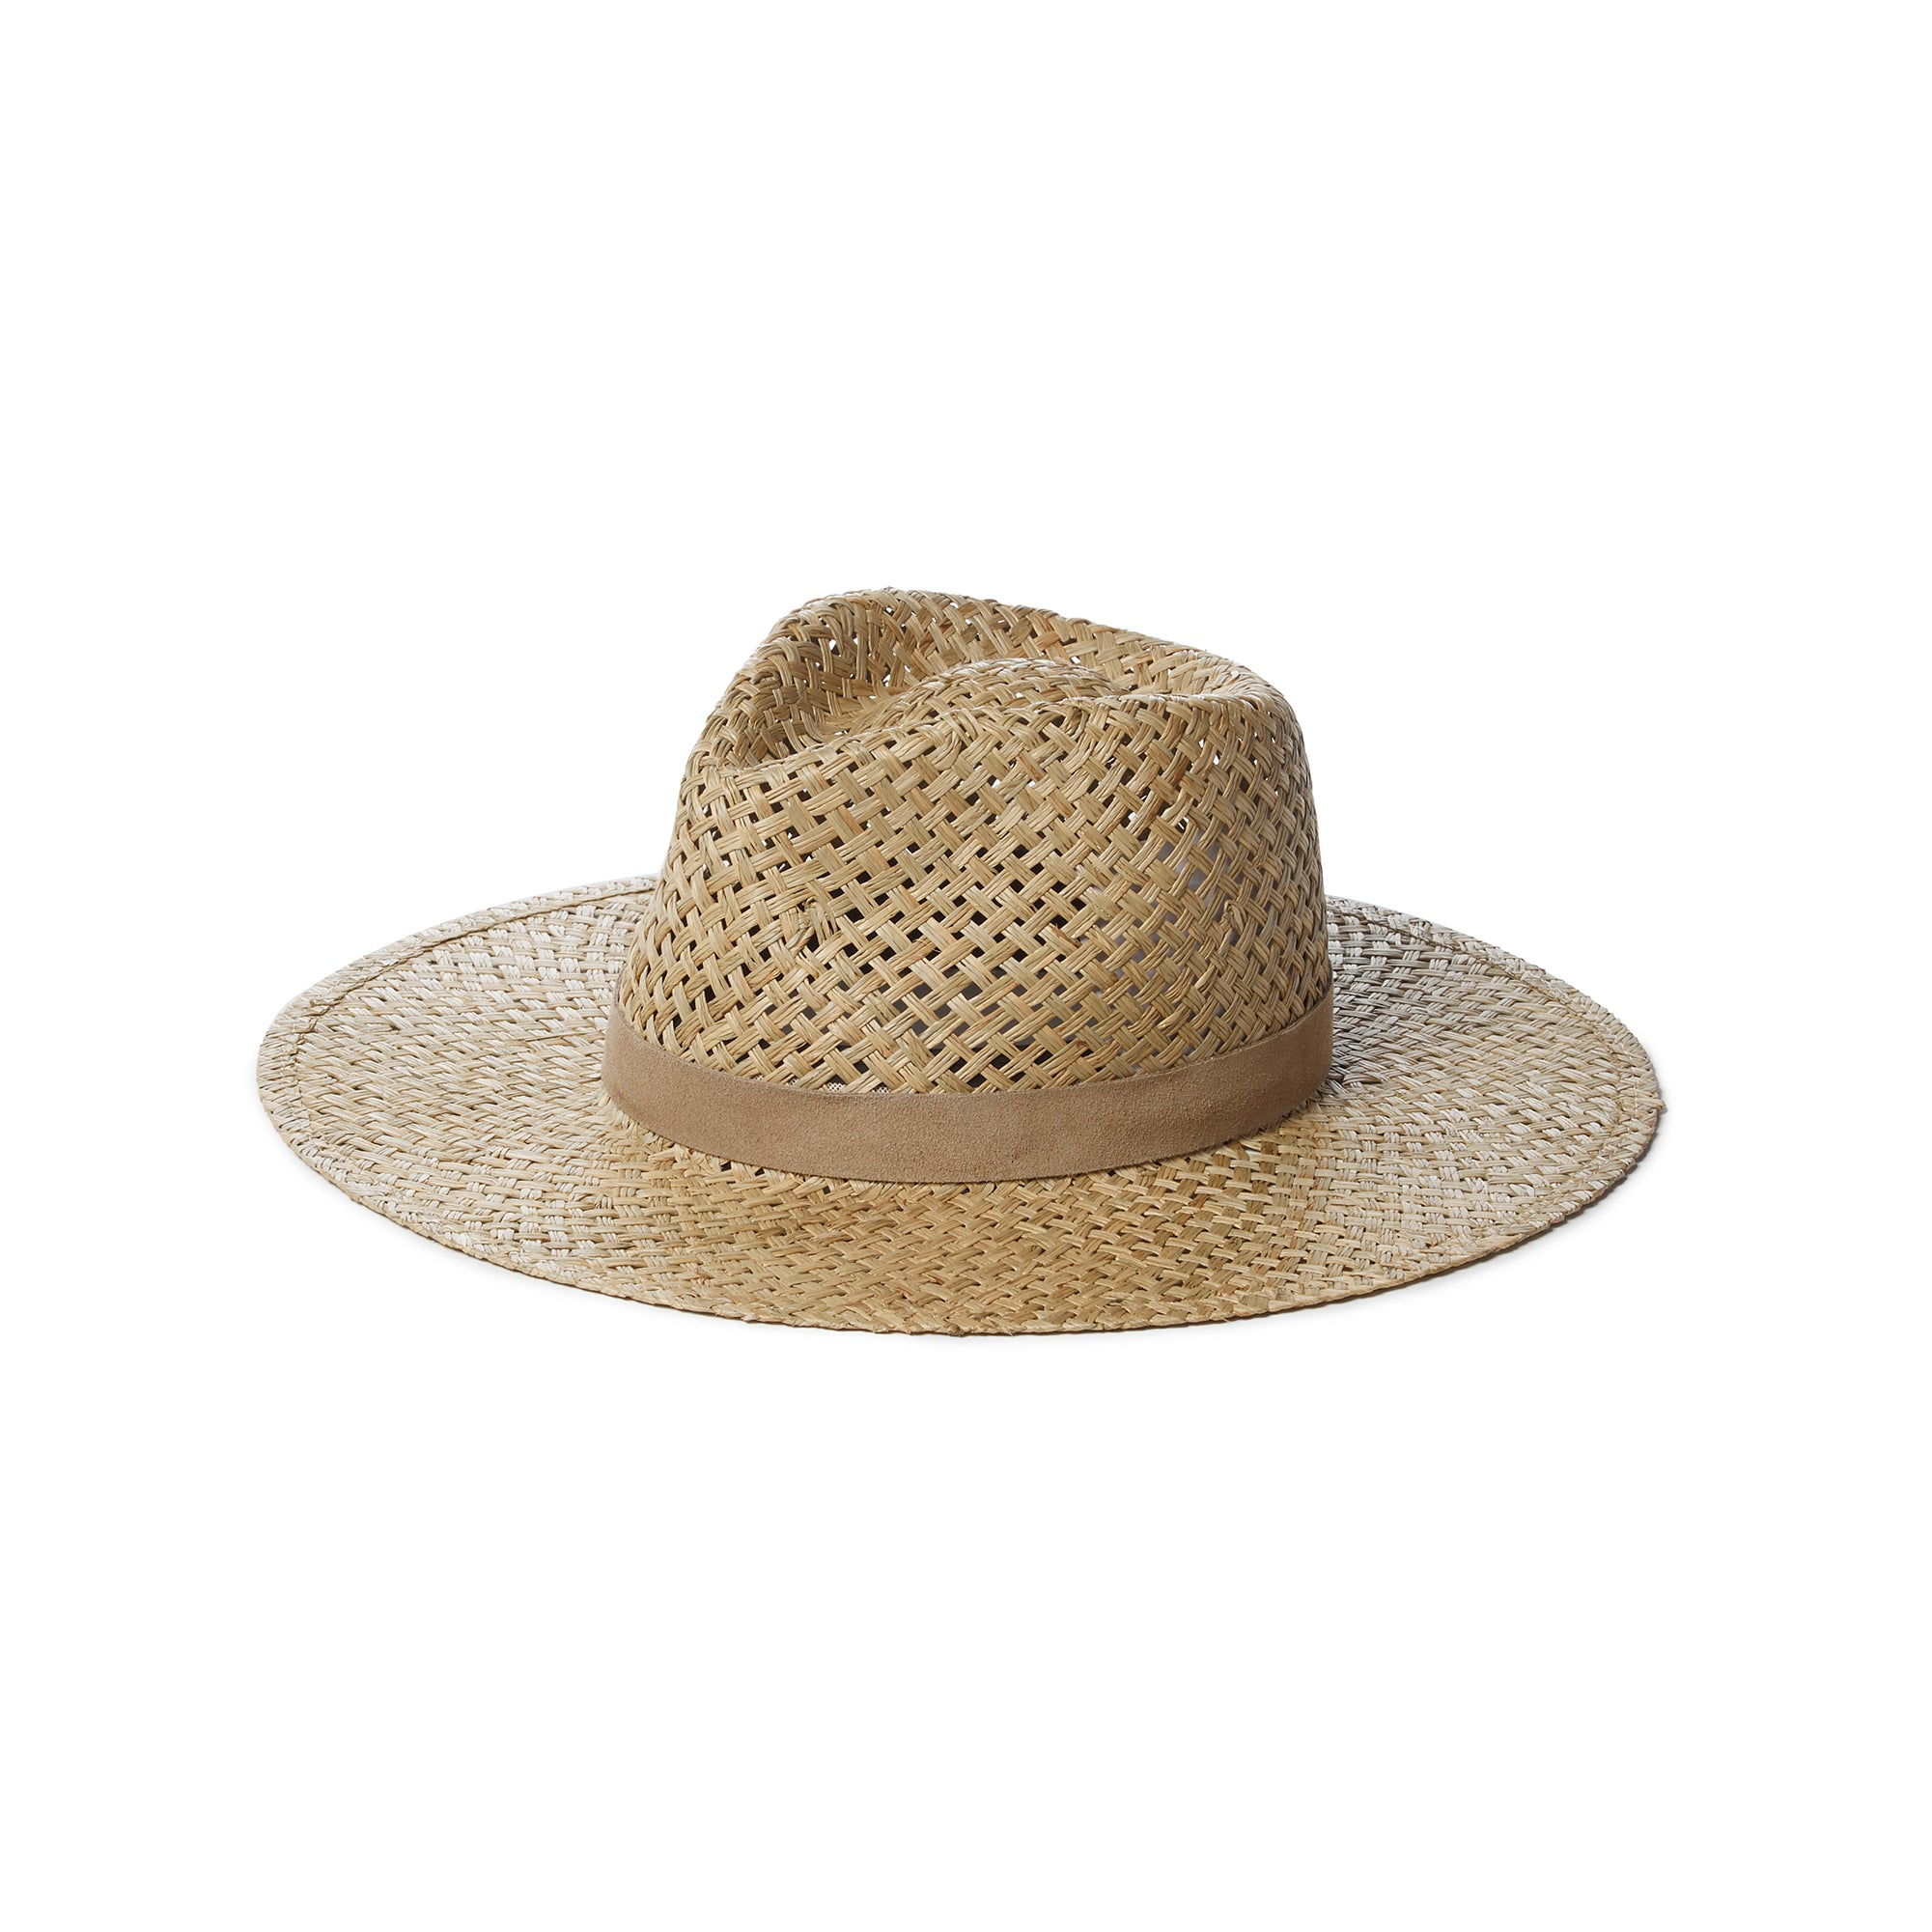 Mary seagrass hat